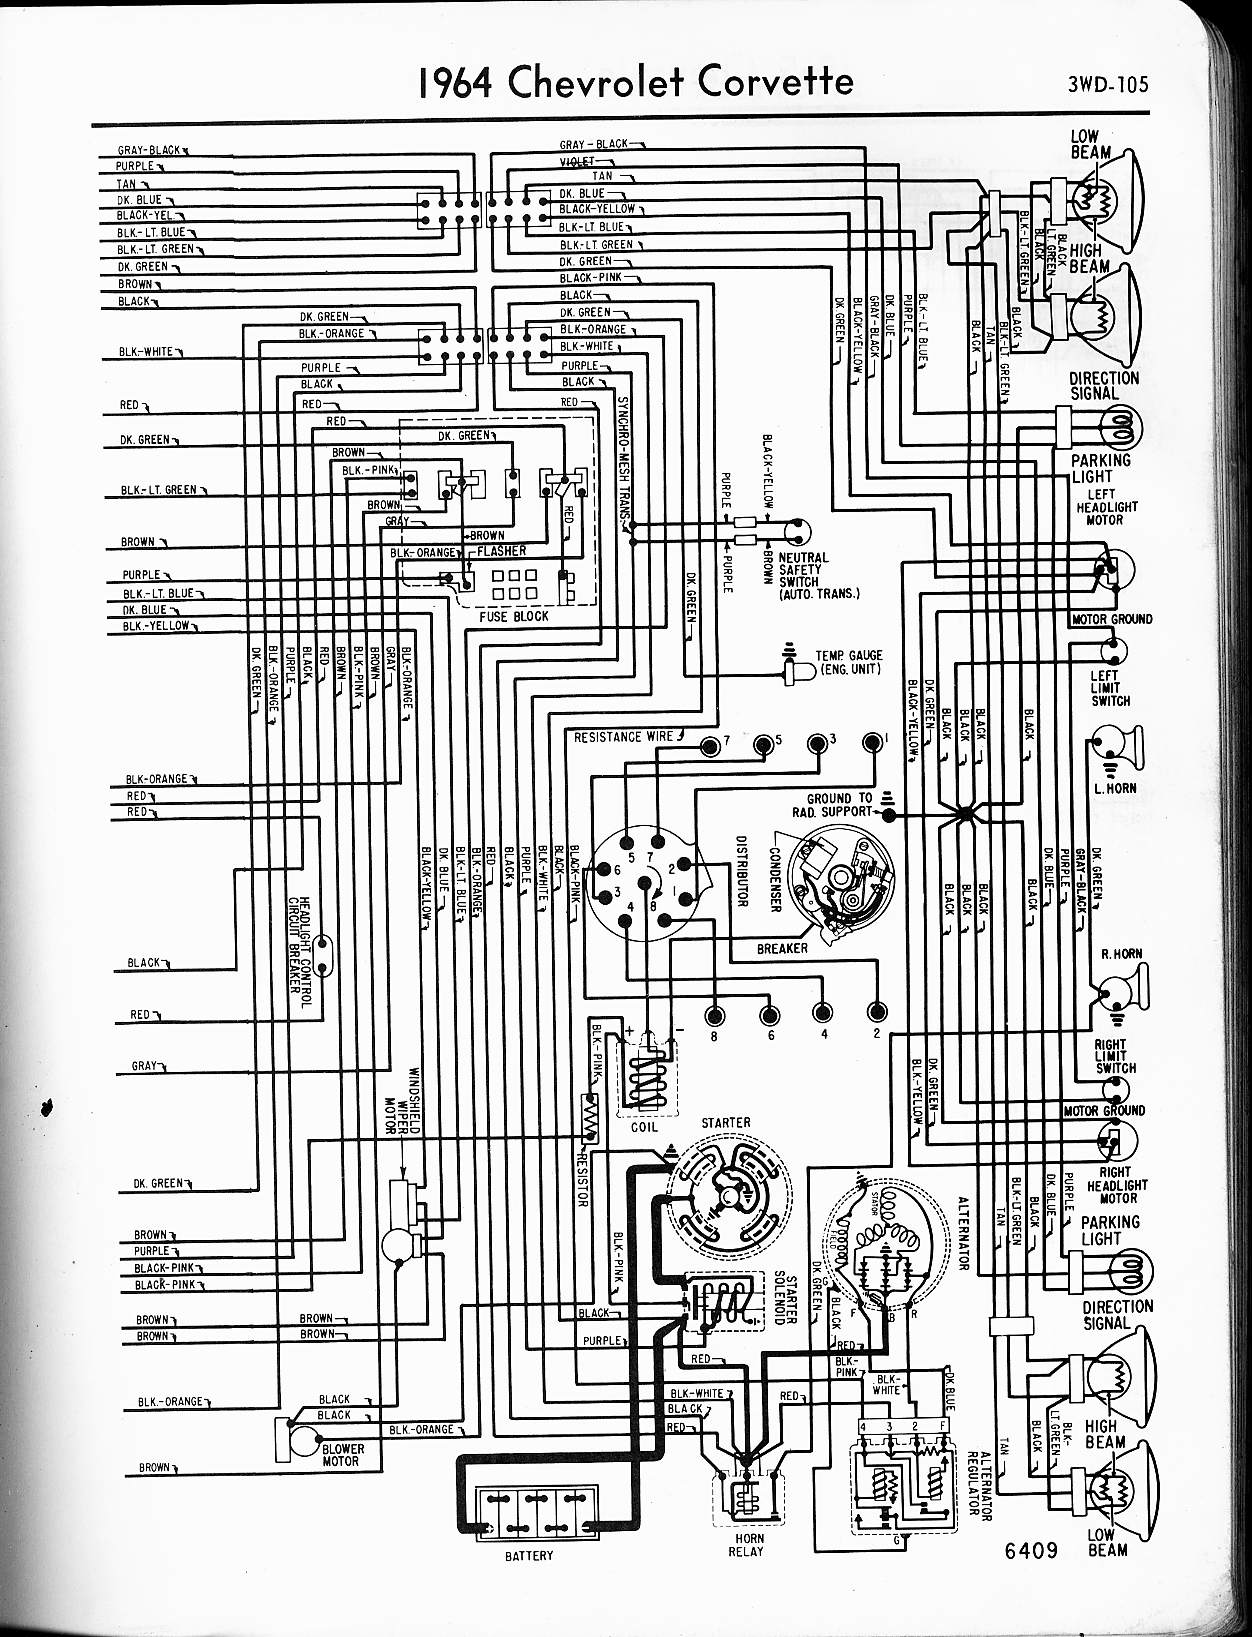 1967 Chevy Impala Wiring Diagram Worksheet And 68 Images Gallery